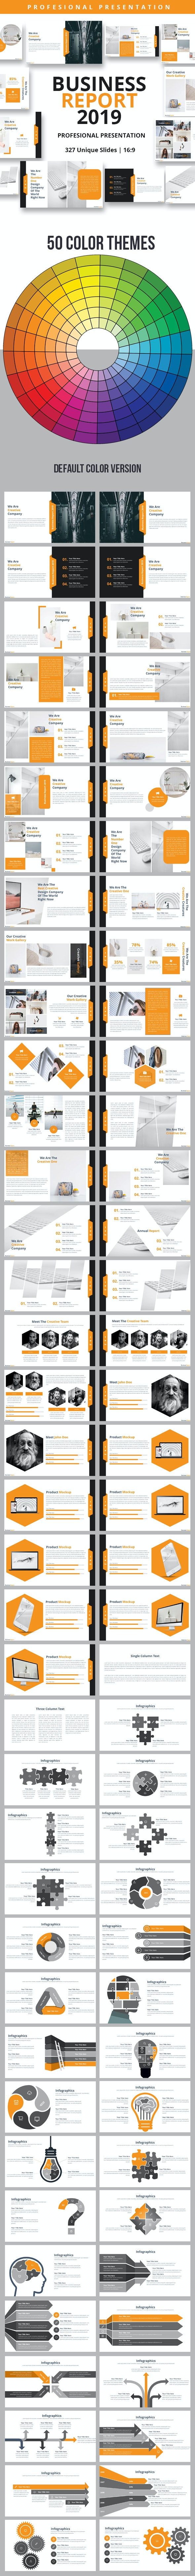 Business Report 2019 Powerpoint Presentation Template - Business PowerPoint Templates